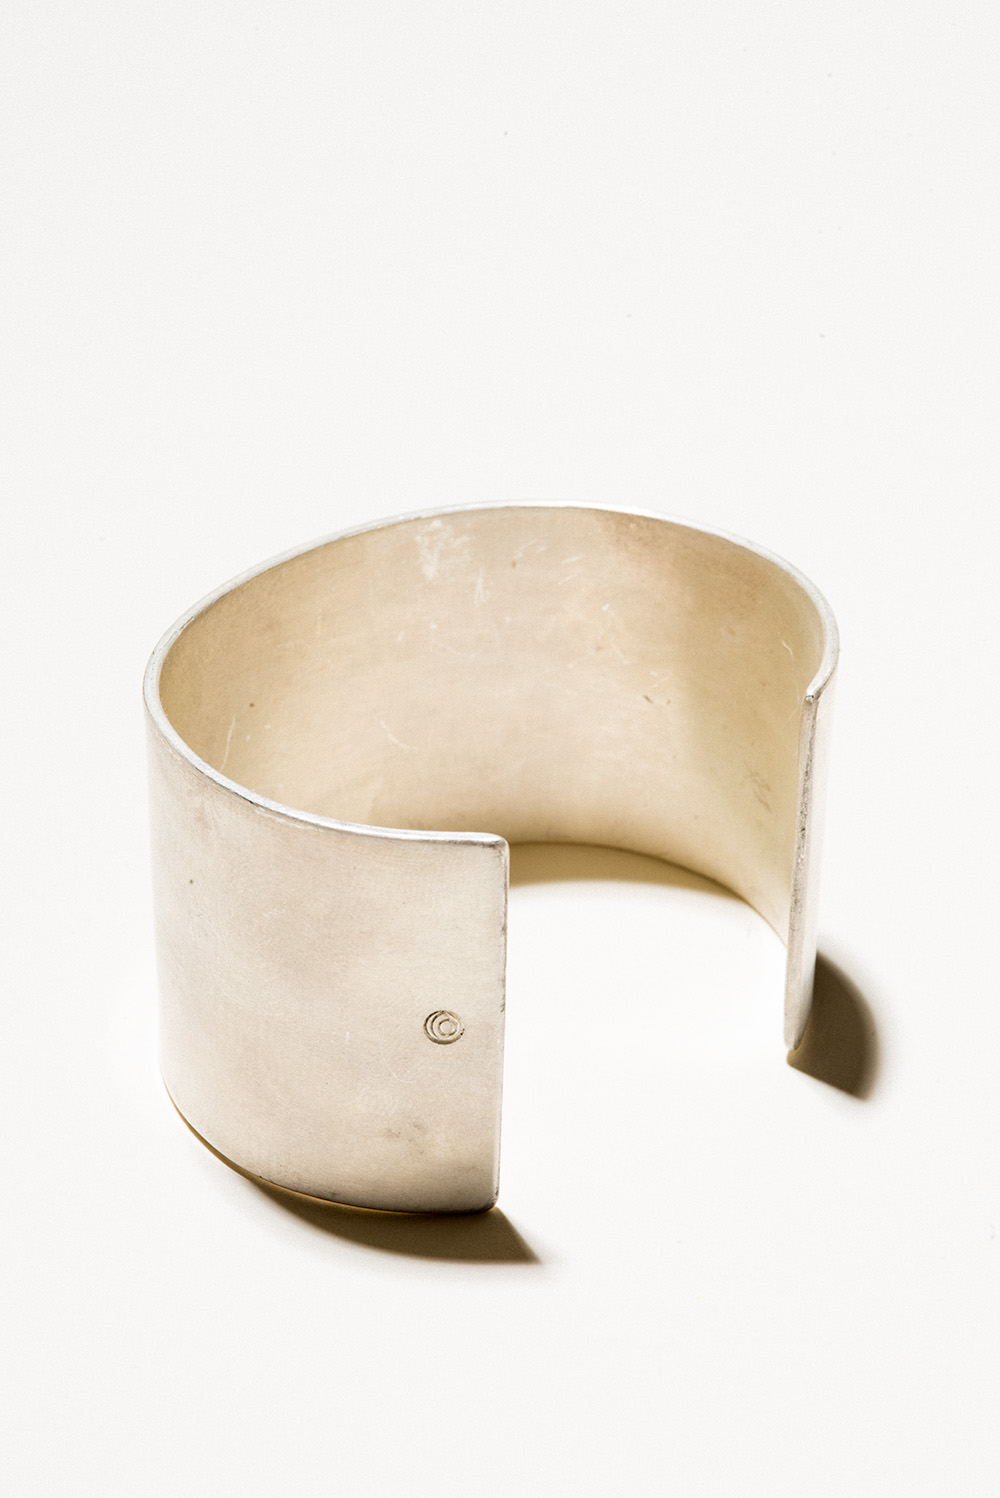 40 Silver Cuff - 30mm wideSterling Silver, Raw FinishHand Smithed $300